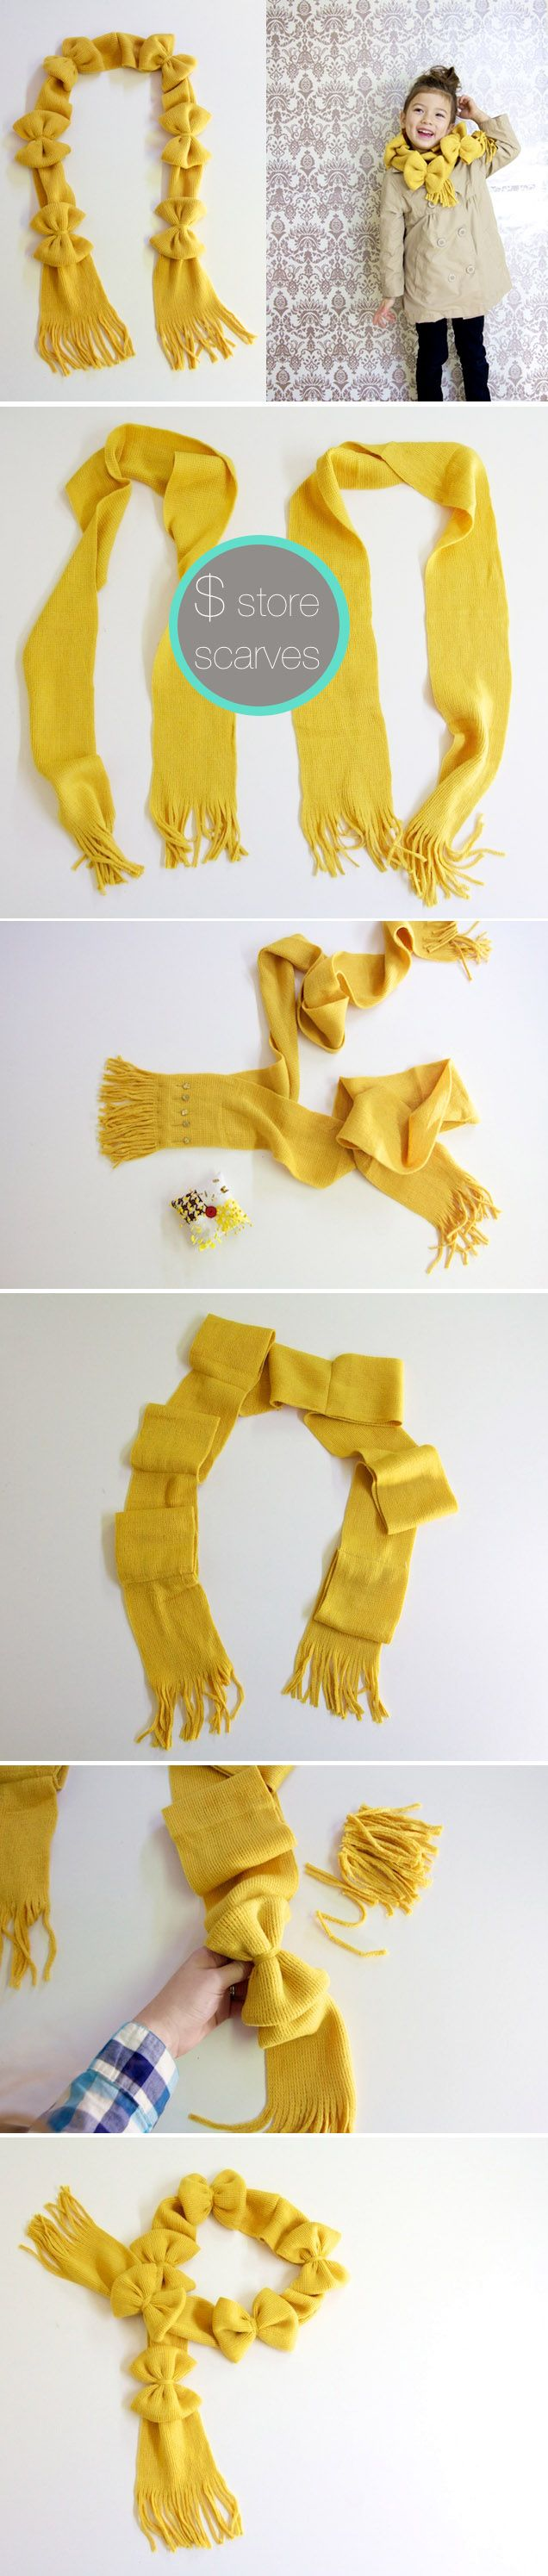 DIY Bows Scarf Tutorial~~for them